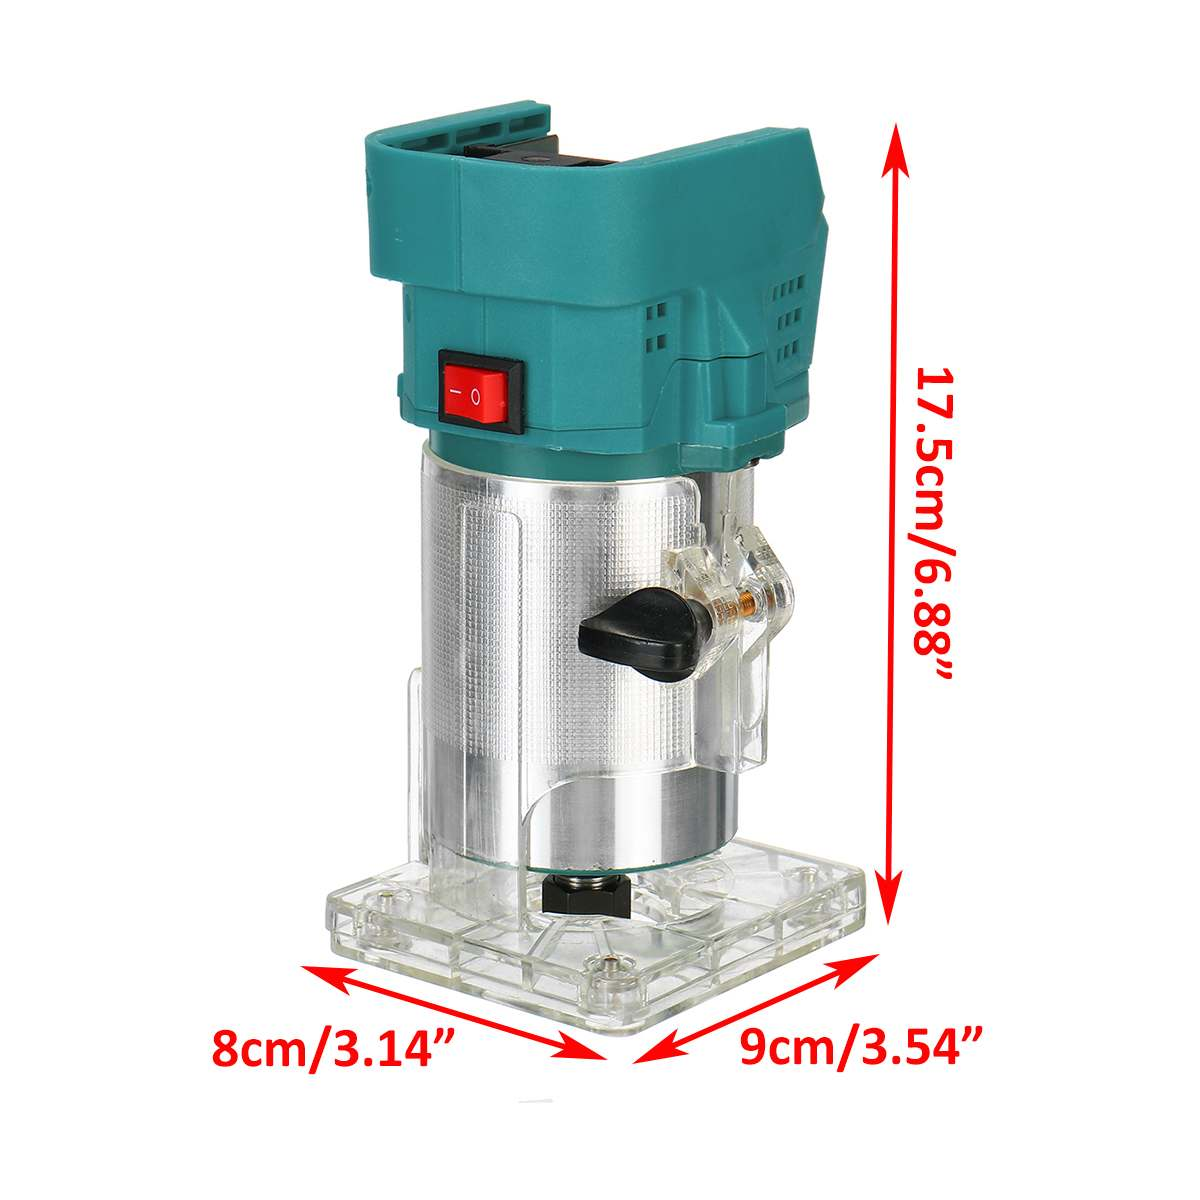 Wood Trimming Carving 850W Electric Cutter Slotting For Milling Battery Hand Wookworking Makita Machine Engraving Router Trimmer